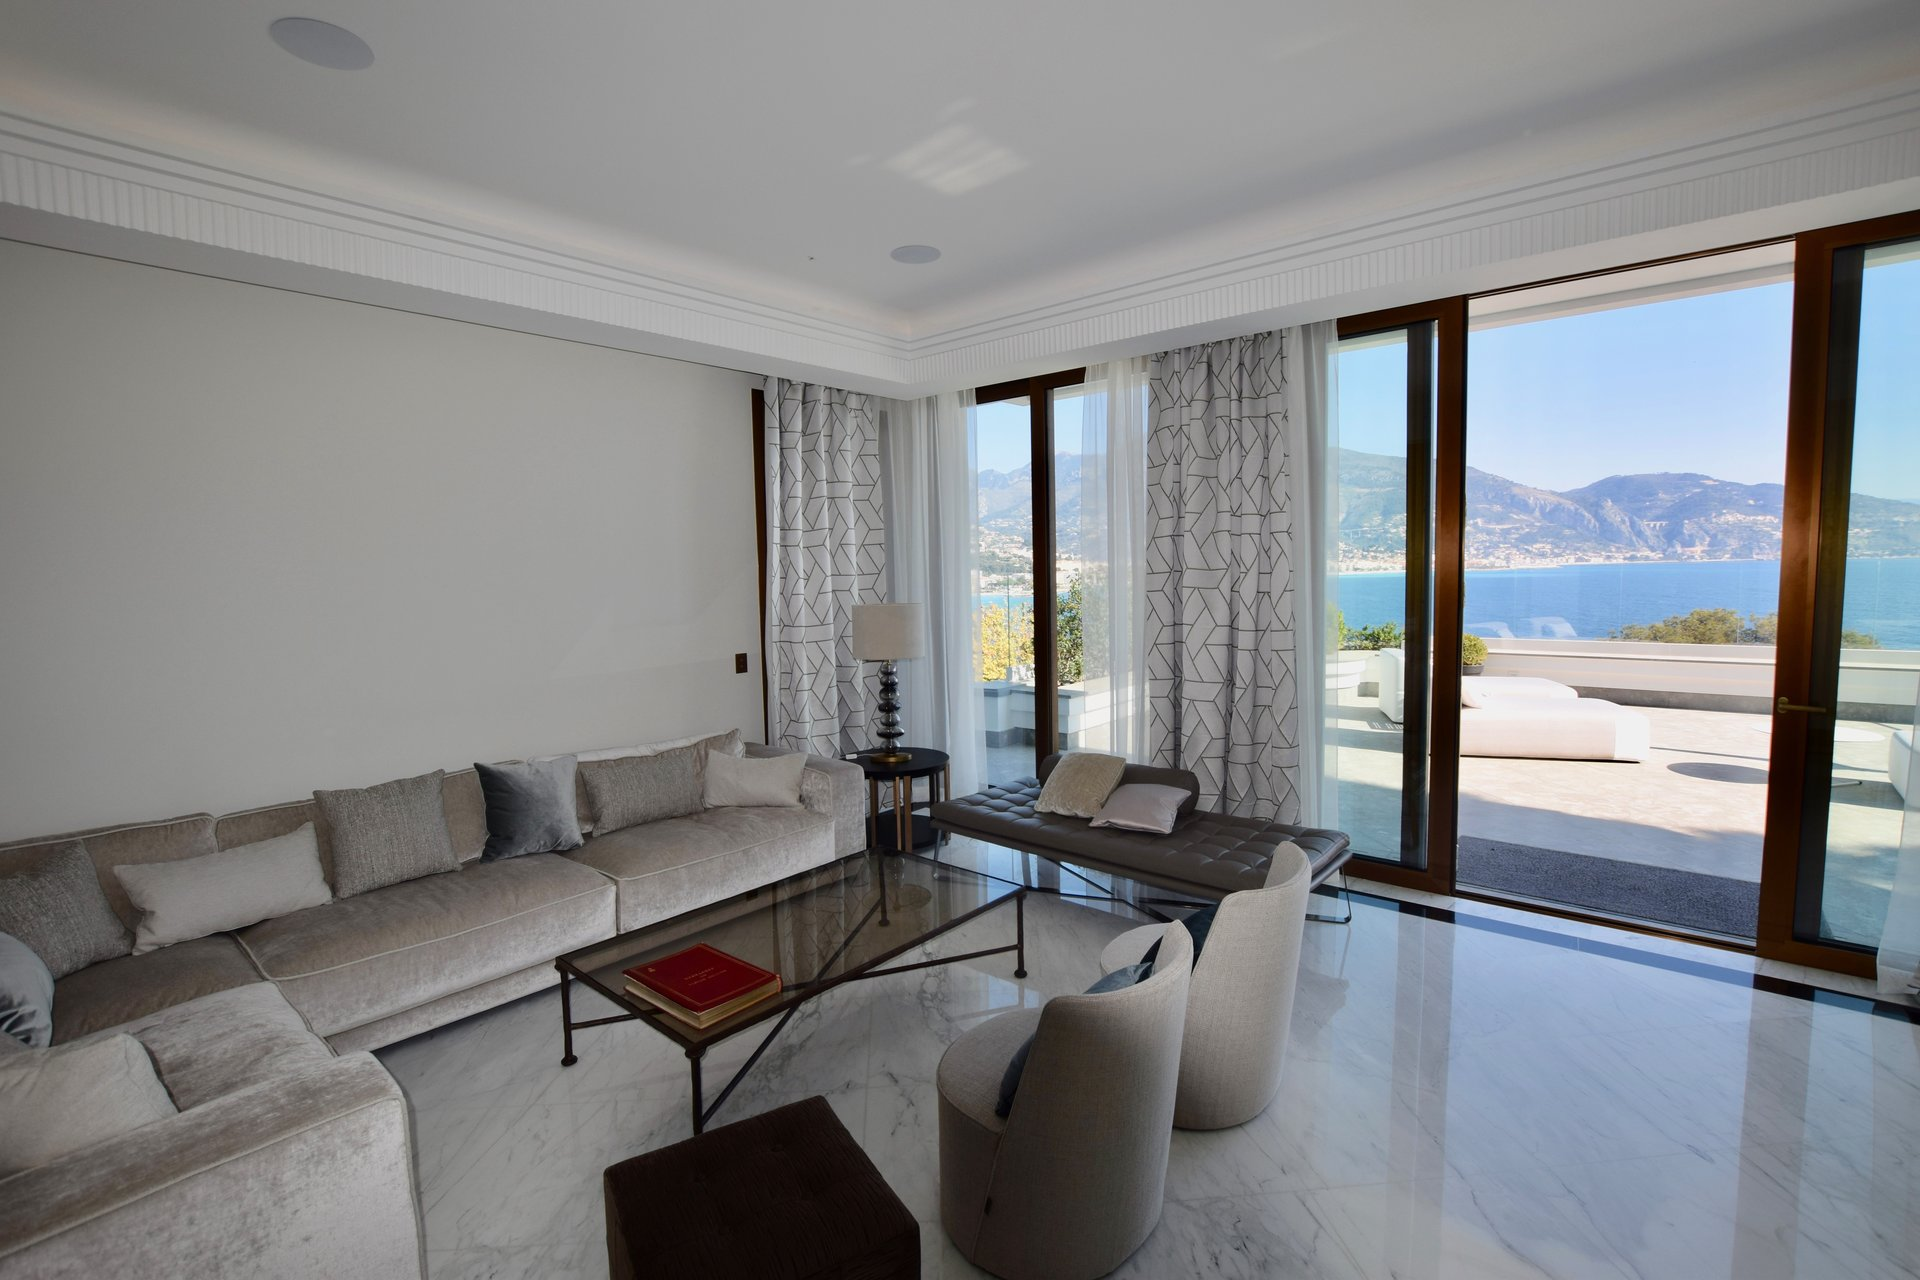 Villa for sale Roquebrune Cap Martin